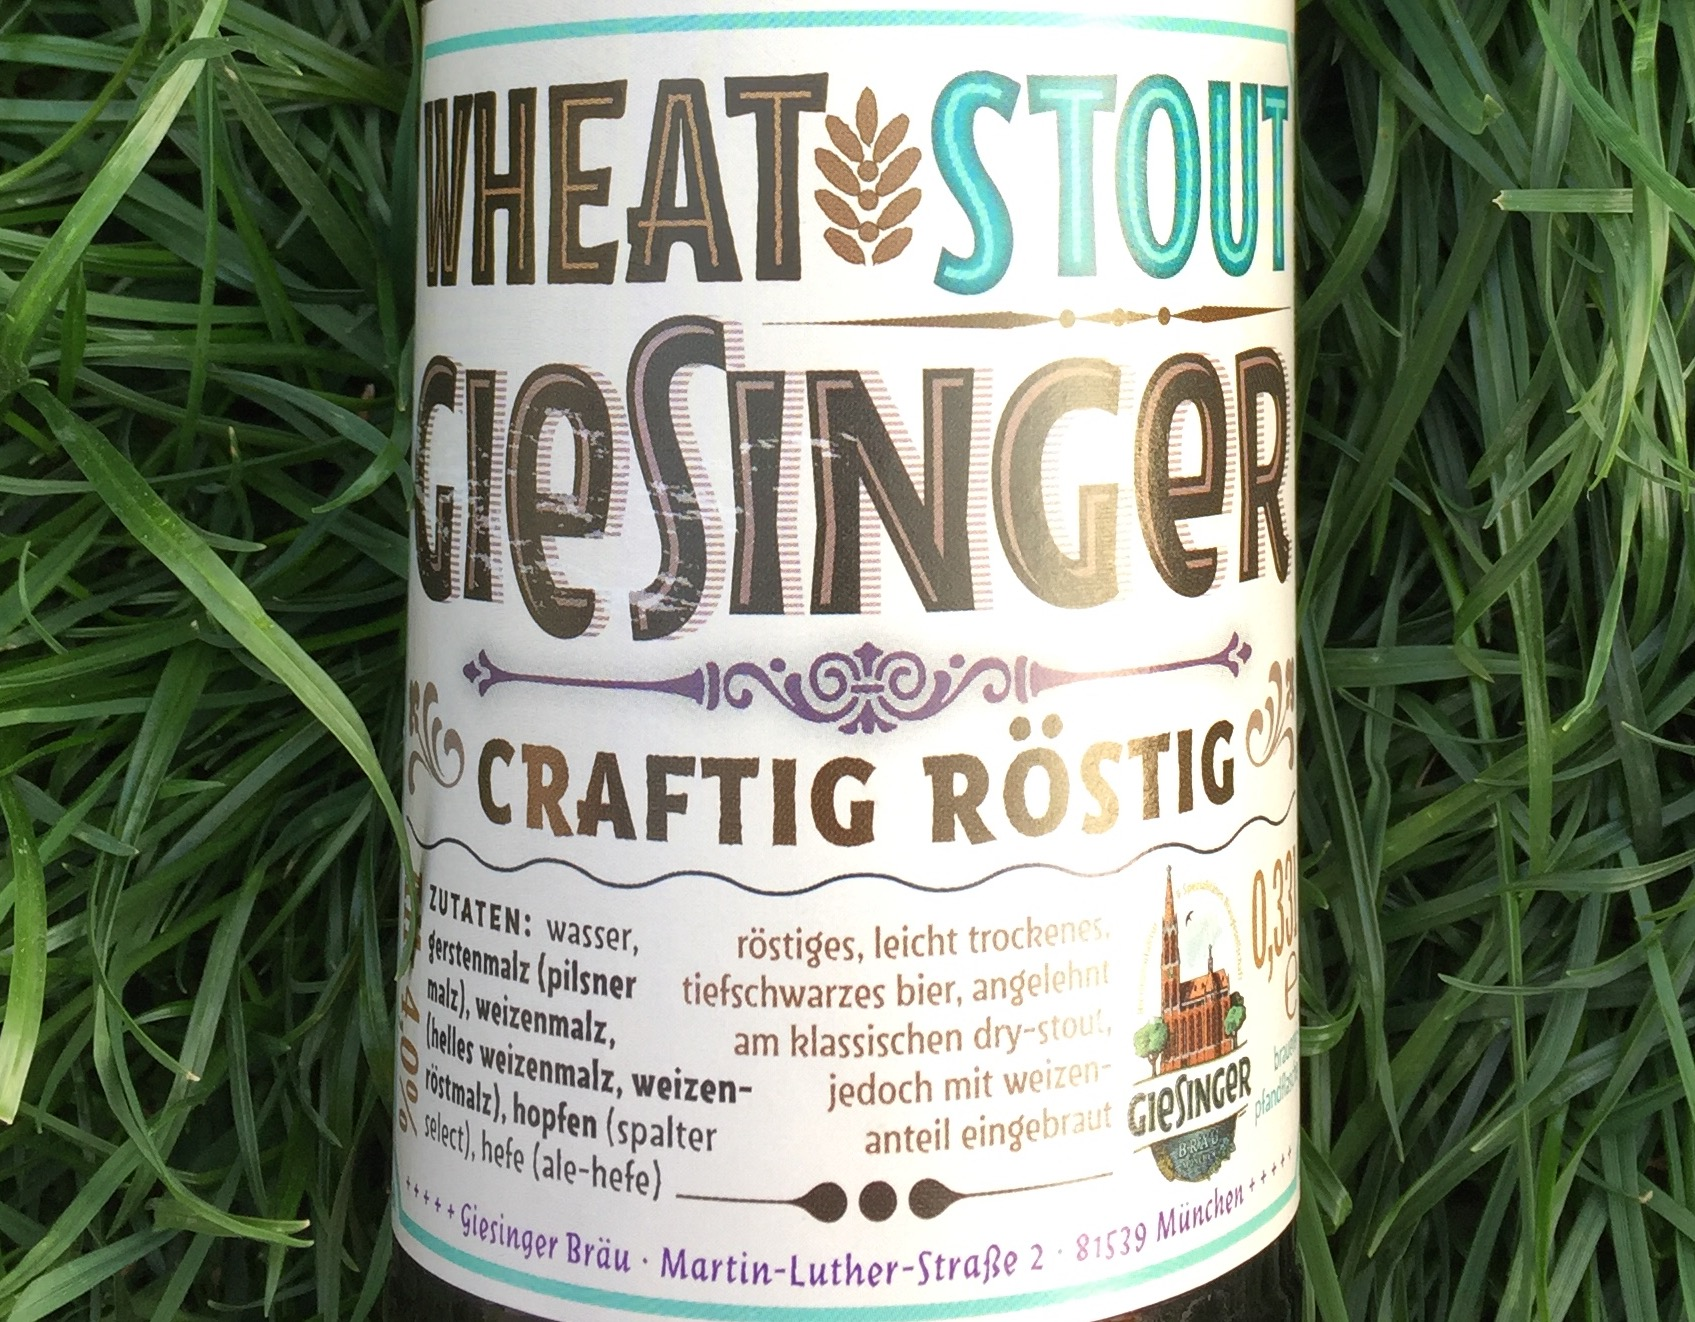 Giesinger - Wheat Stout